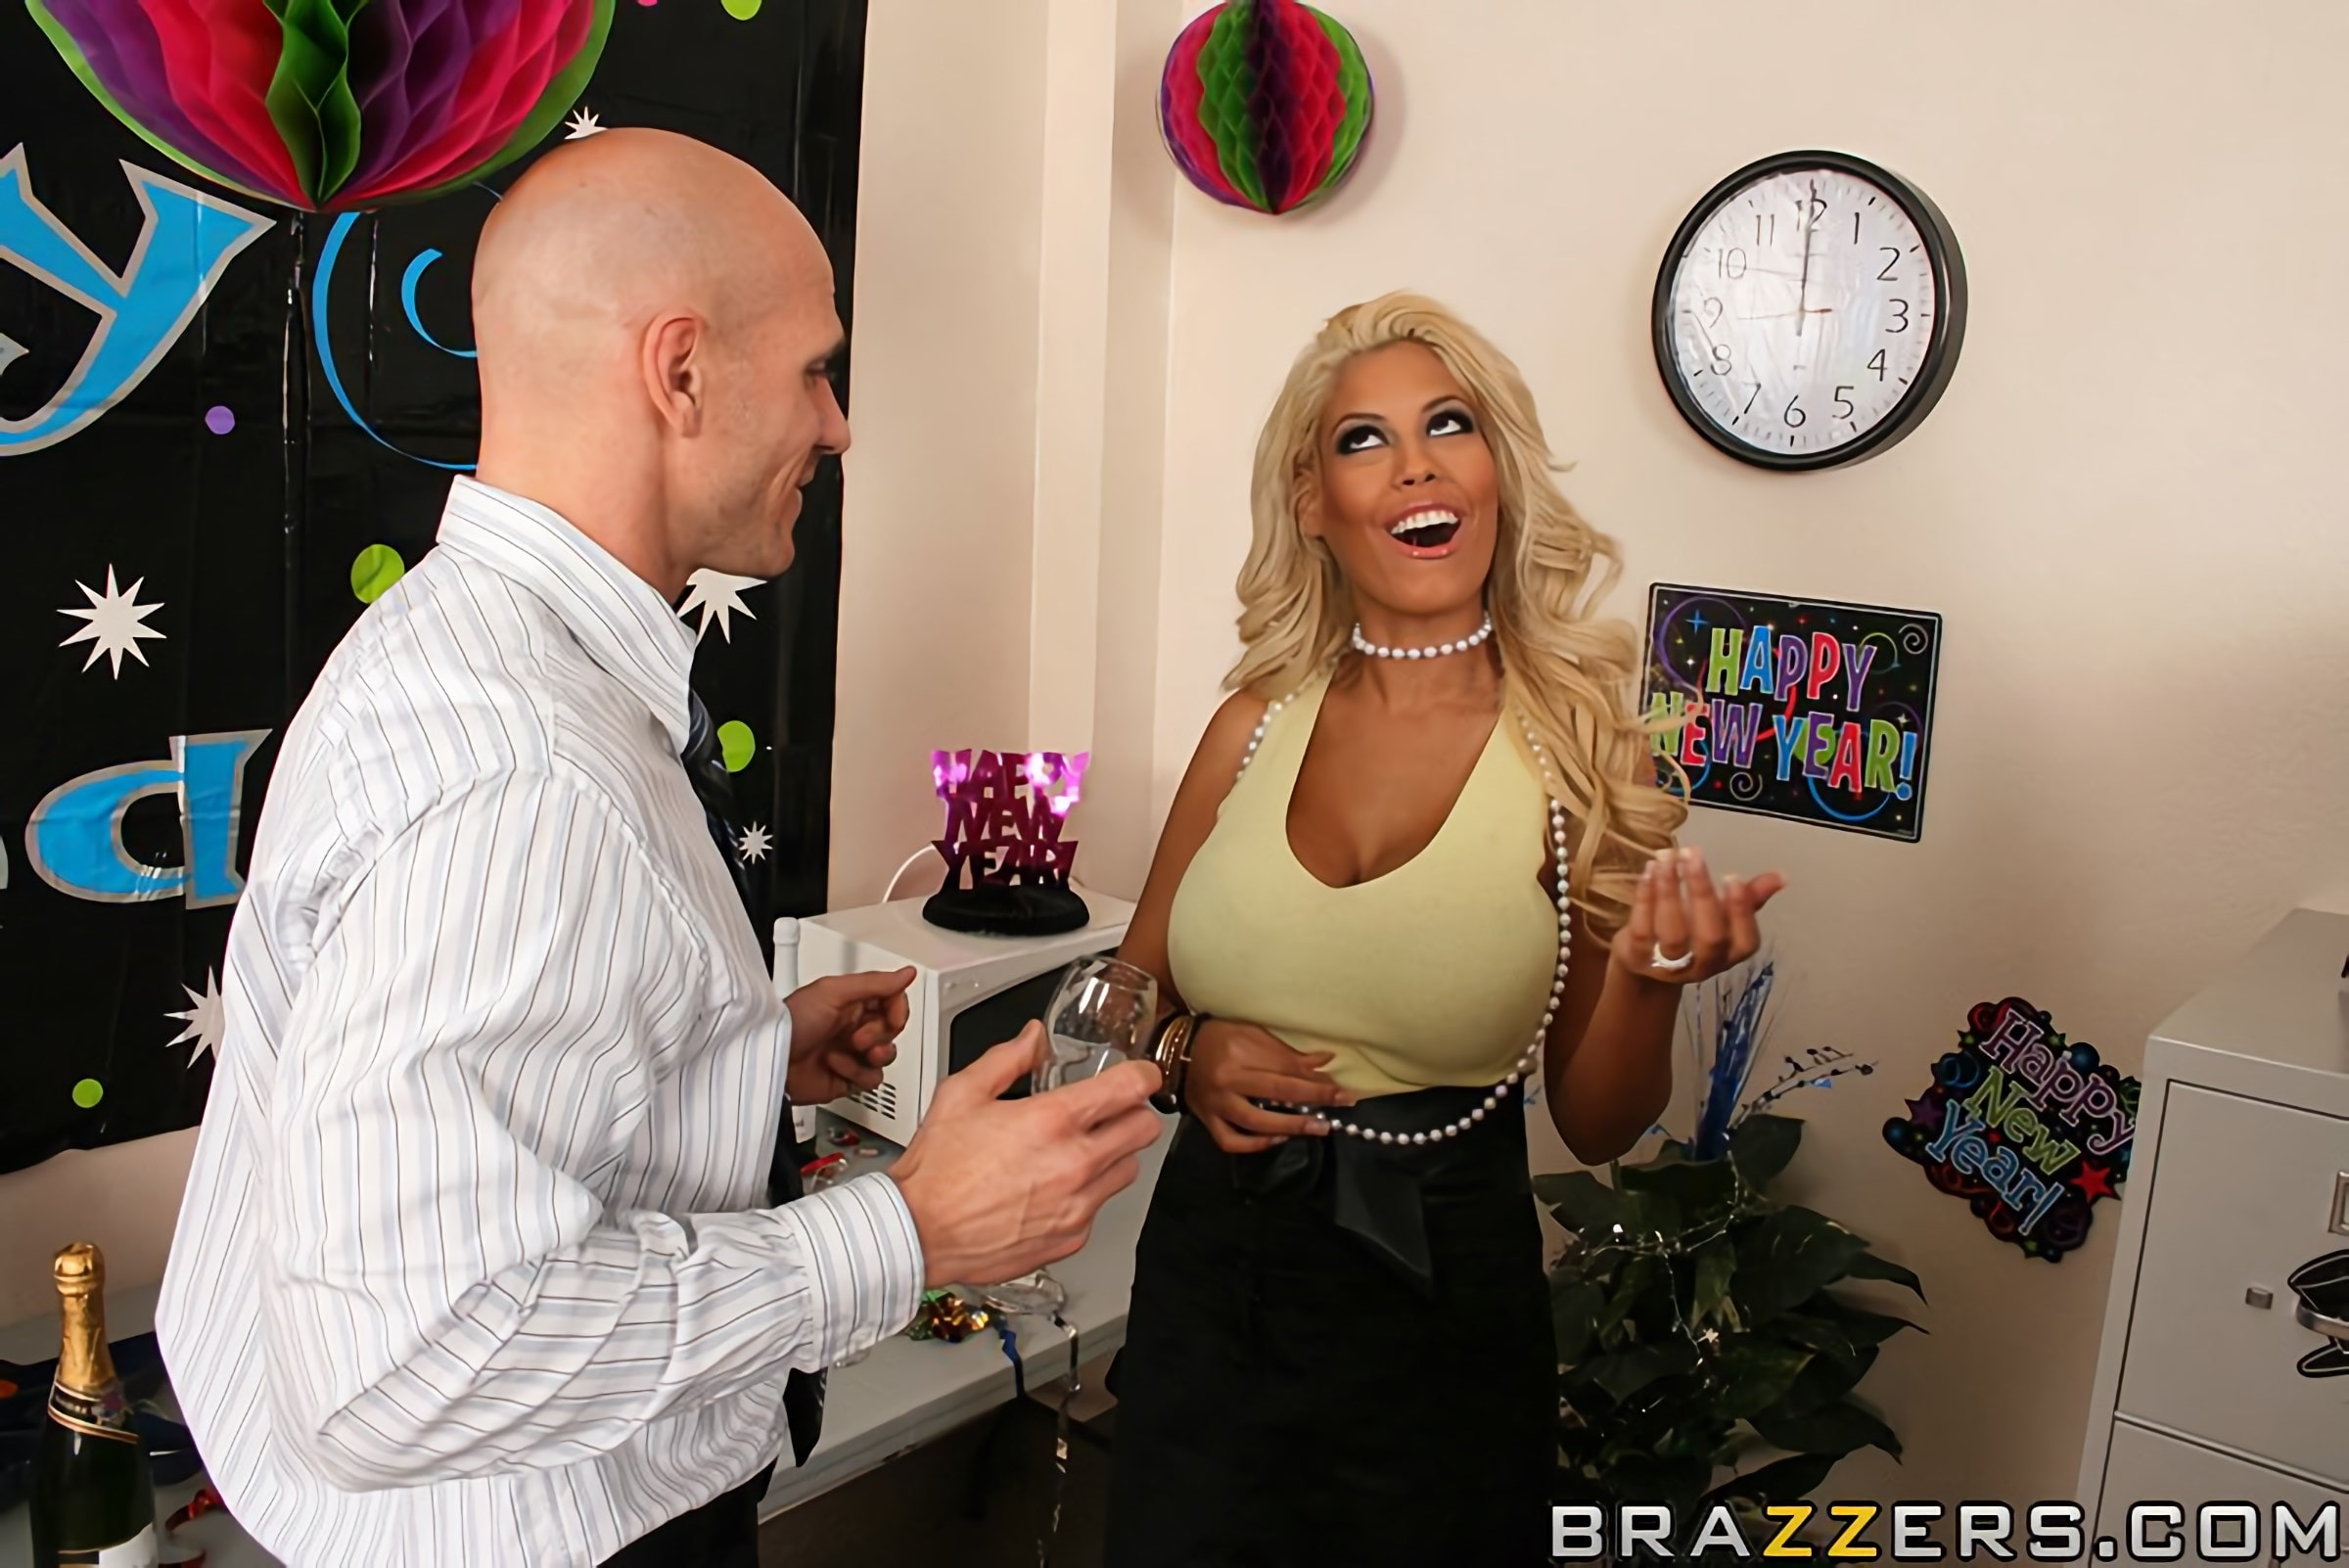 Brazzers 'Starting The New Year With A Bang' starring Bridgette B (Photo 6)